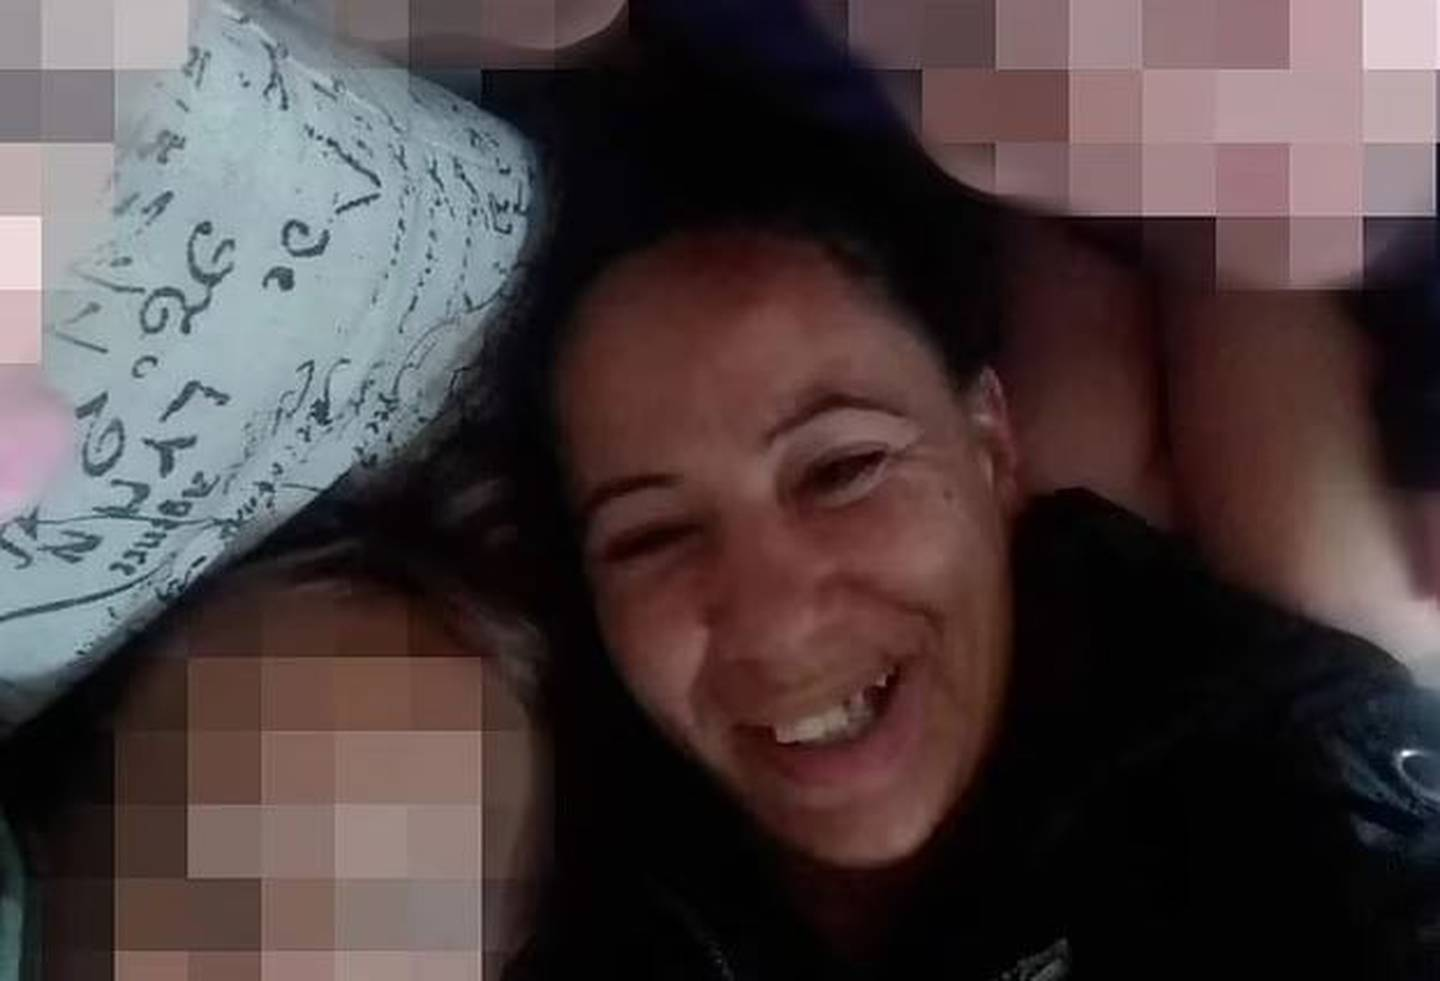 After her court appearance last week Kupfer, a New Zealand citizen, took to social media to in a lengthy post claiming she was no longer the same person. Photo / Courts South Australia